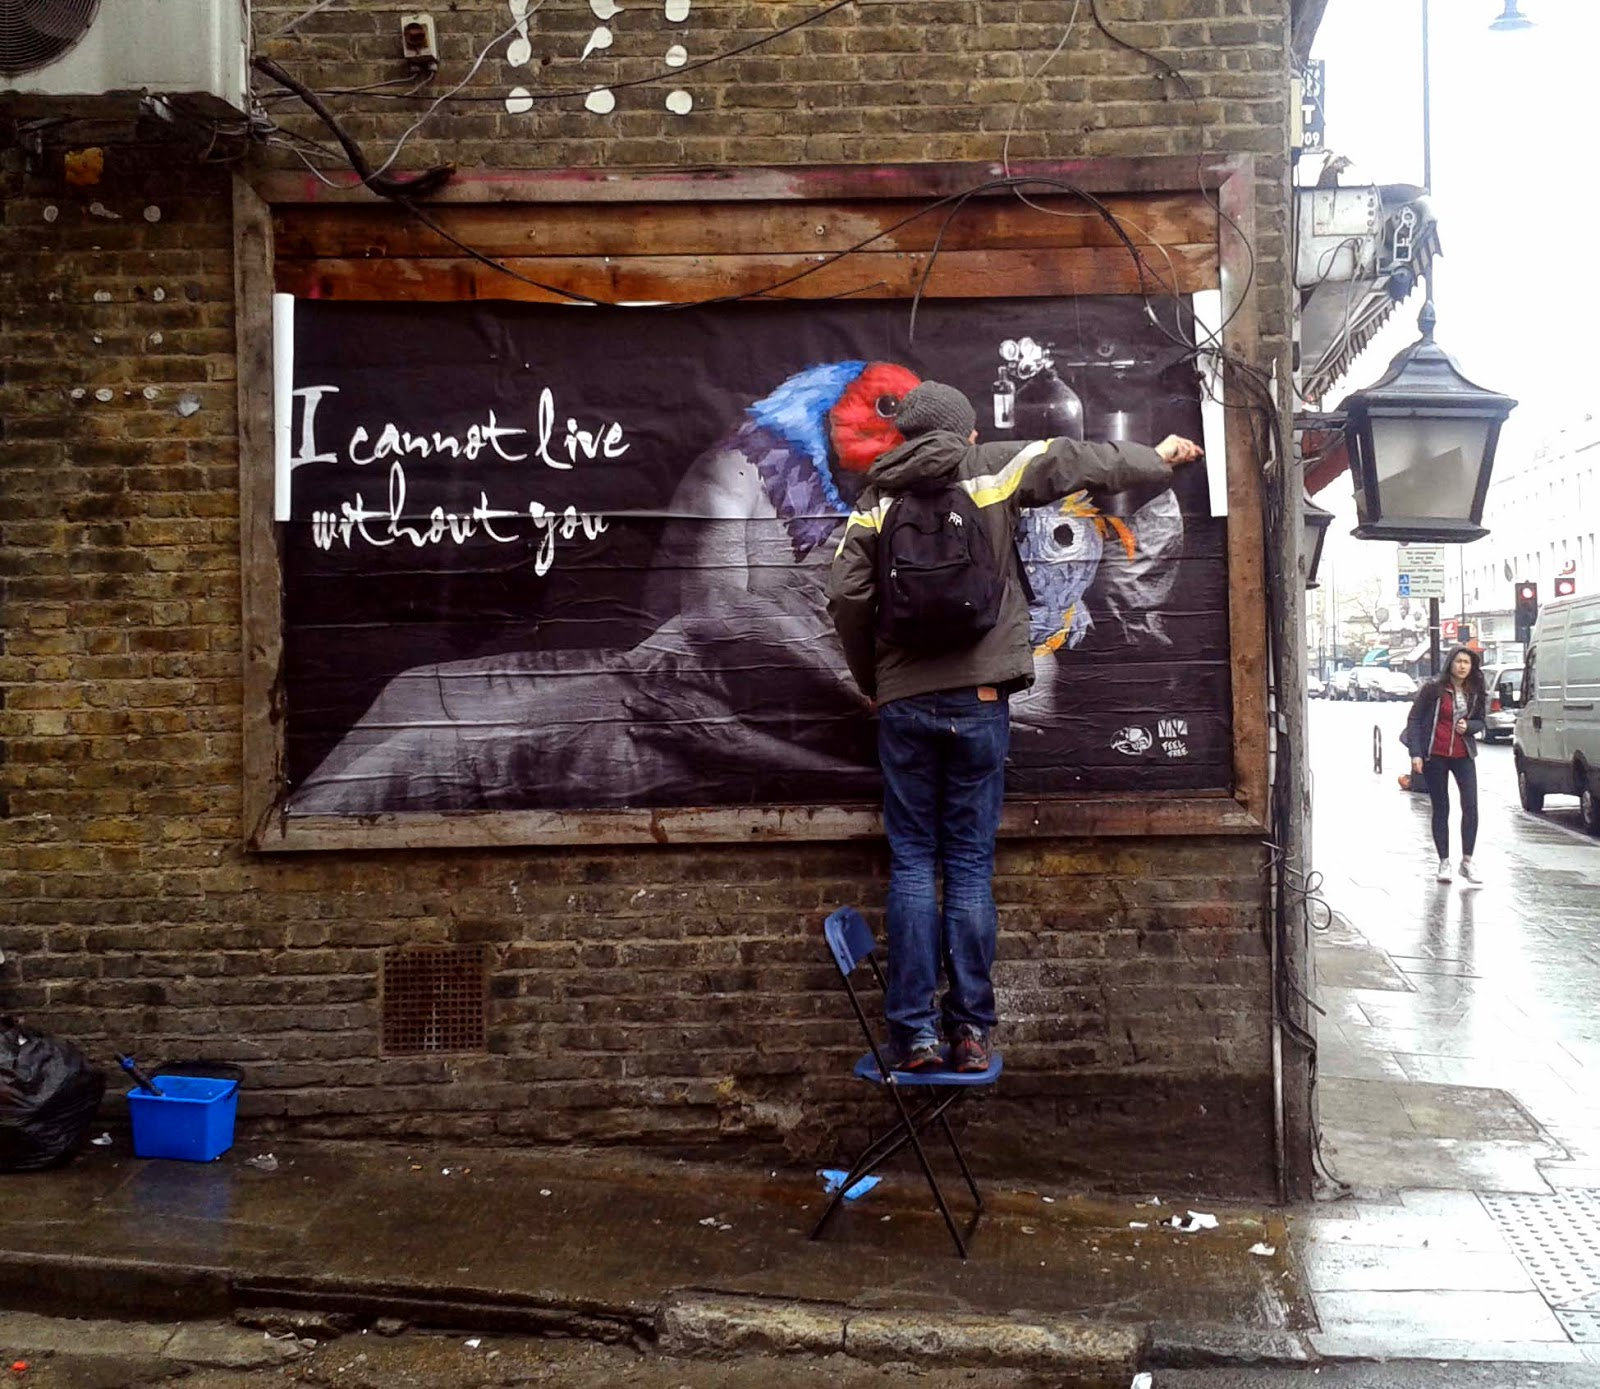 vinz-a-new-series-of-murals-in-london-05